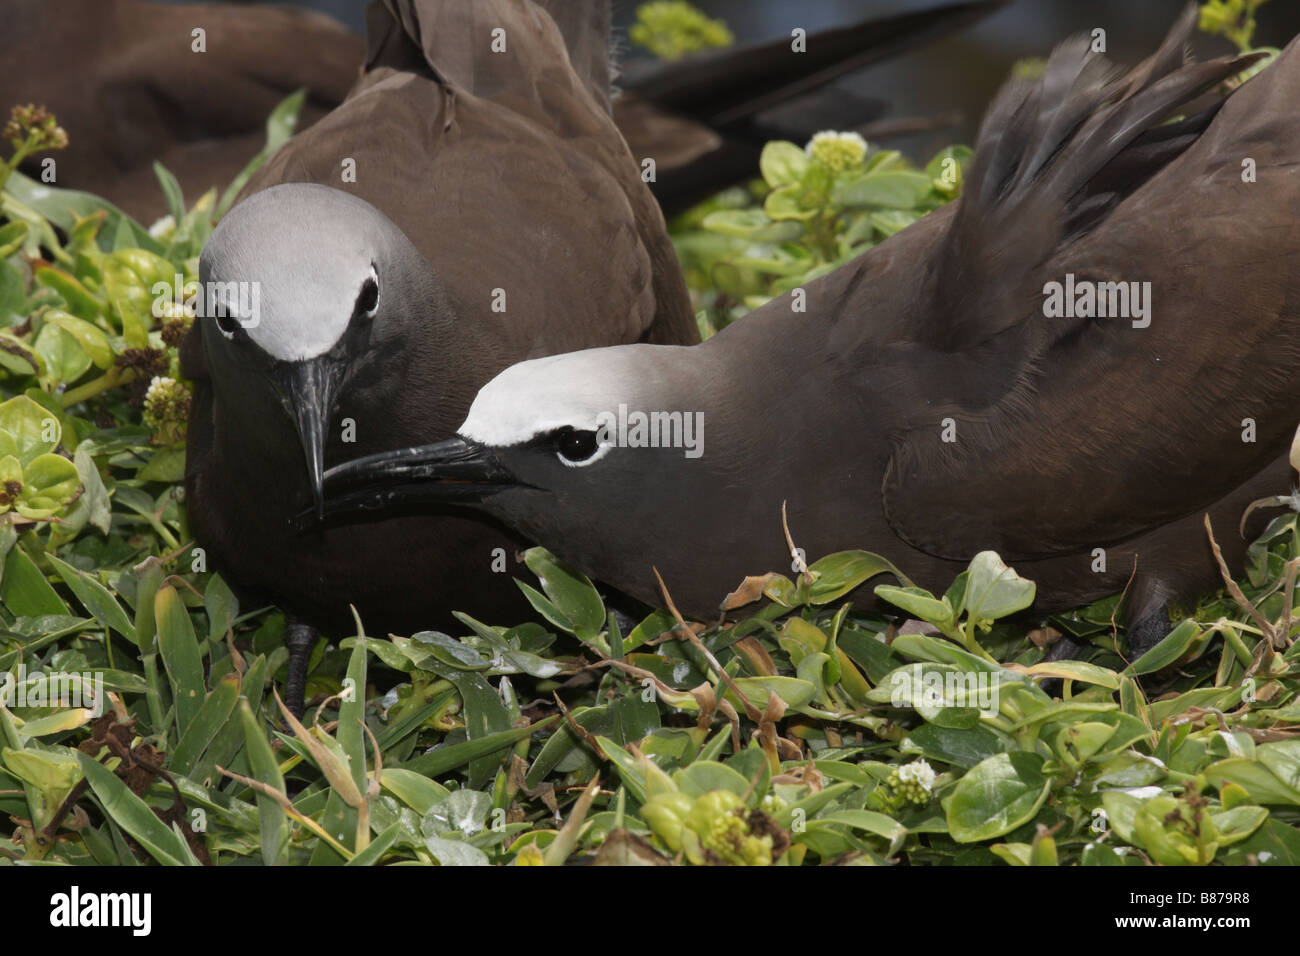 common noddy two adults touching beaks - Stock Image